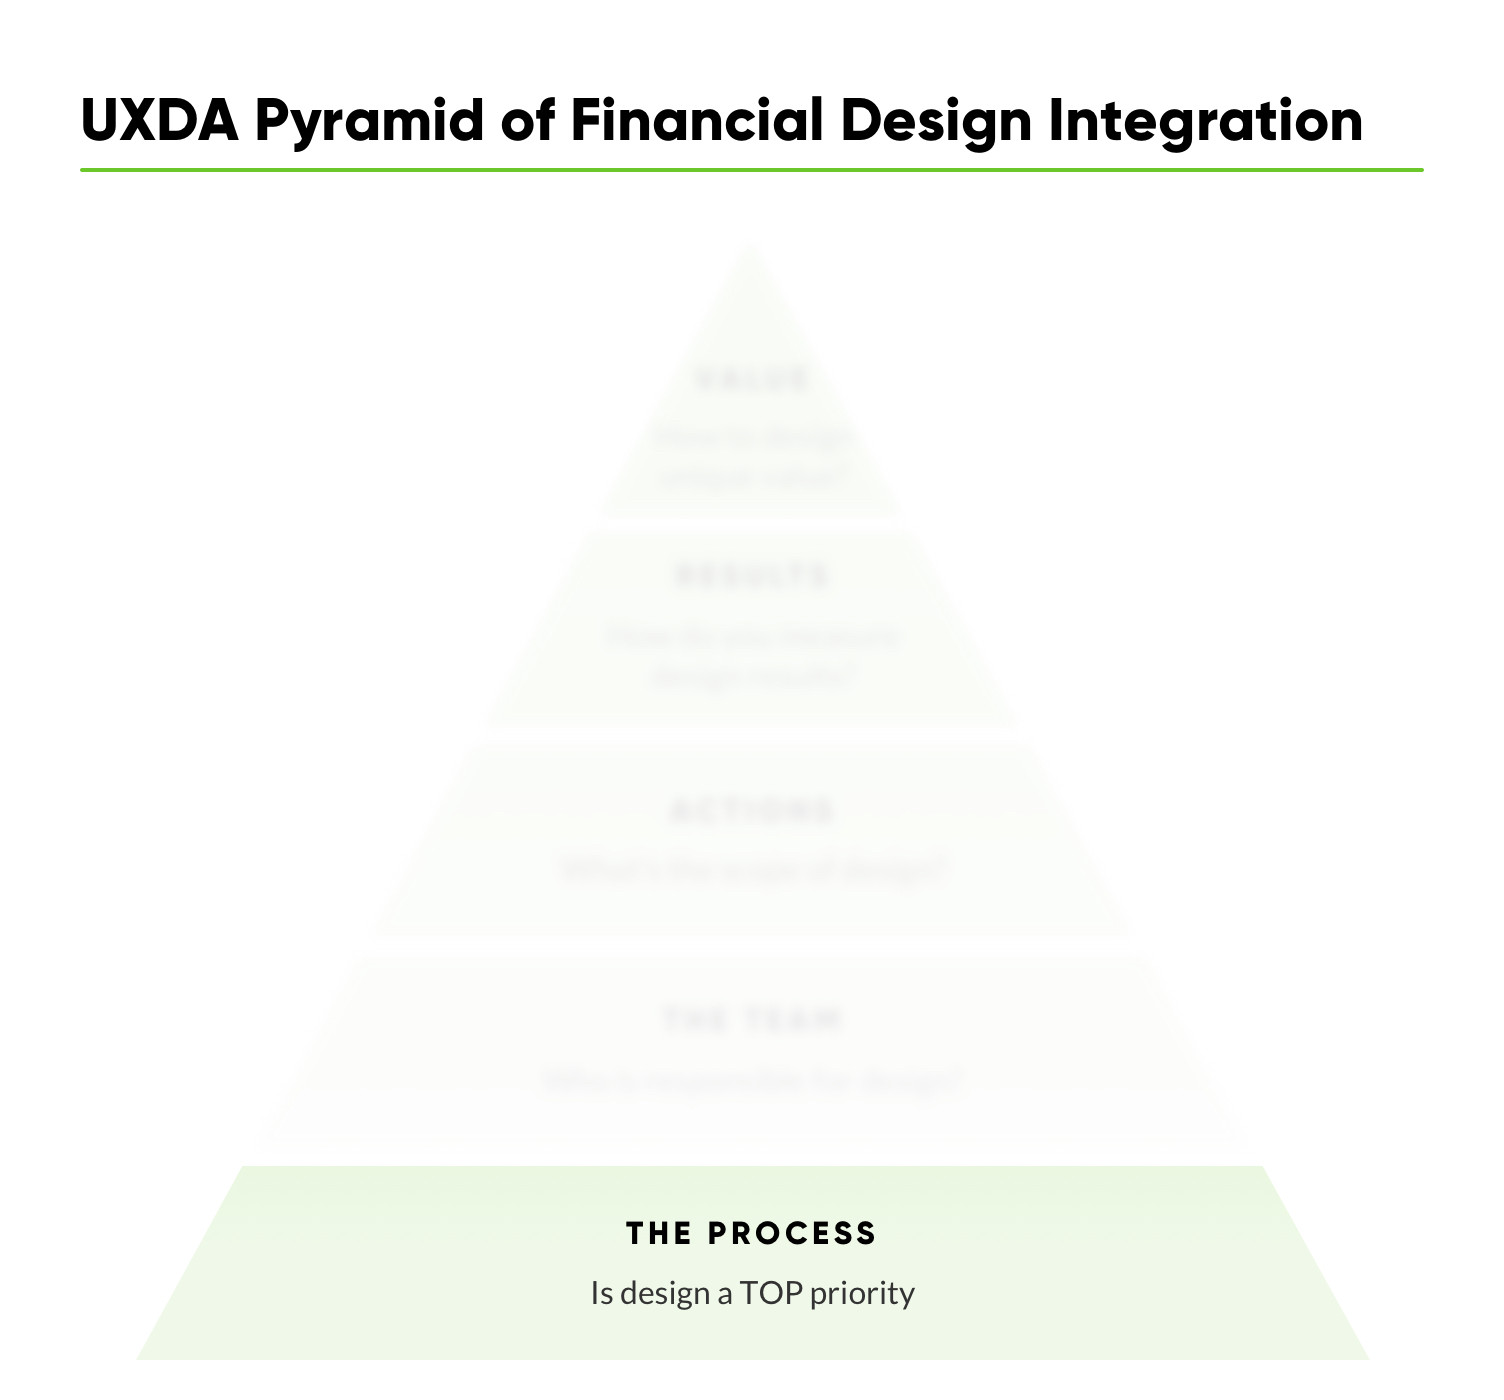 financial-ux-design-methodology-uxda-financial-design-integration-1-S.jpg